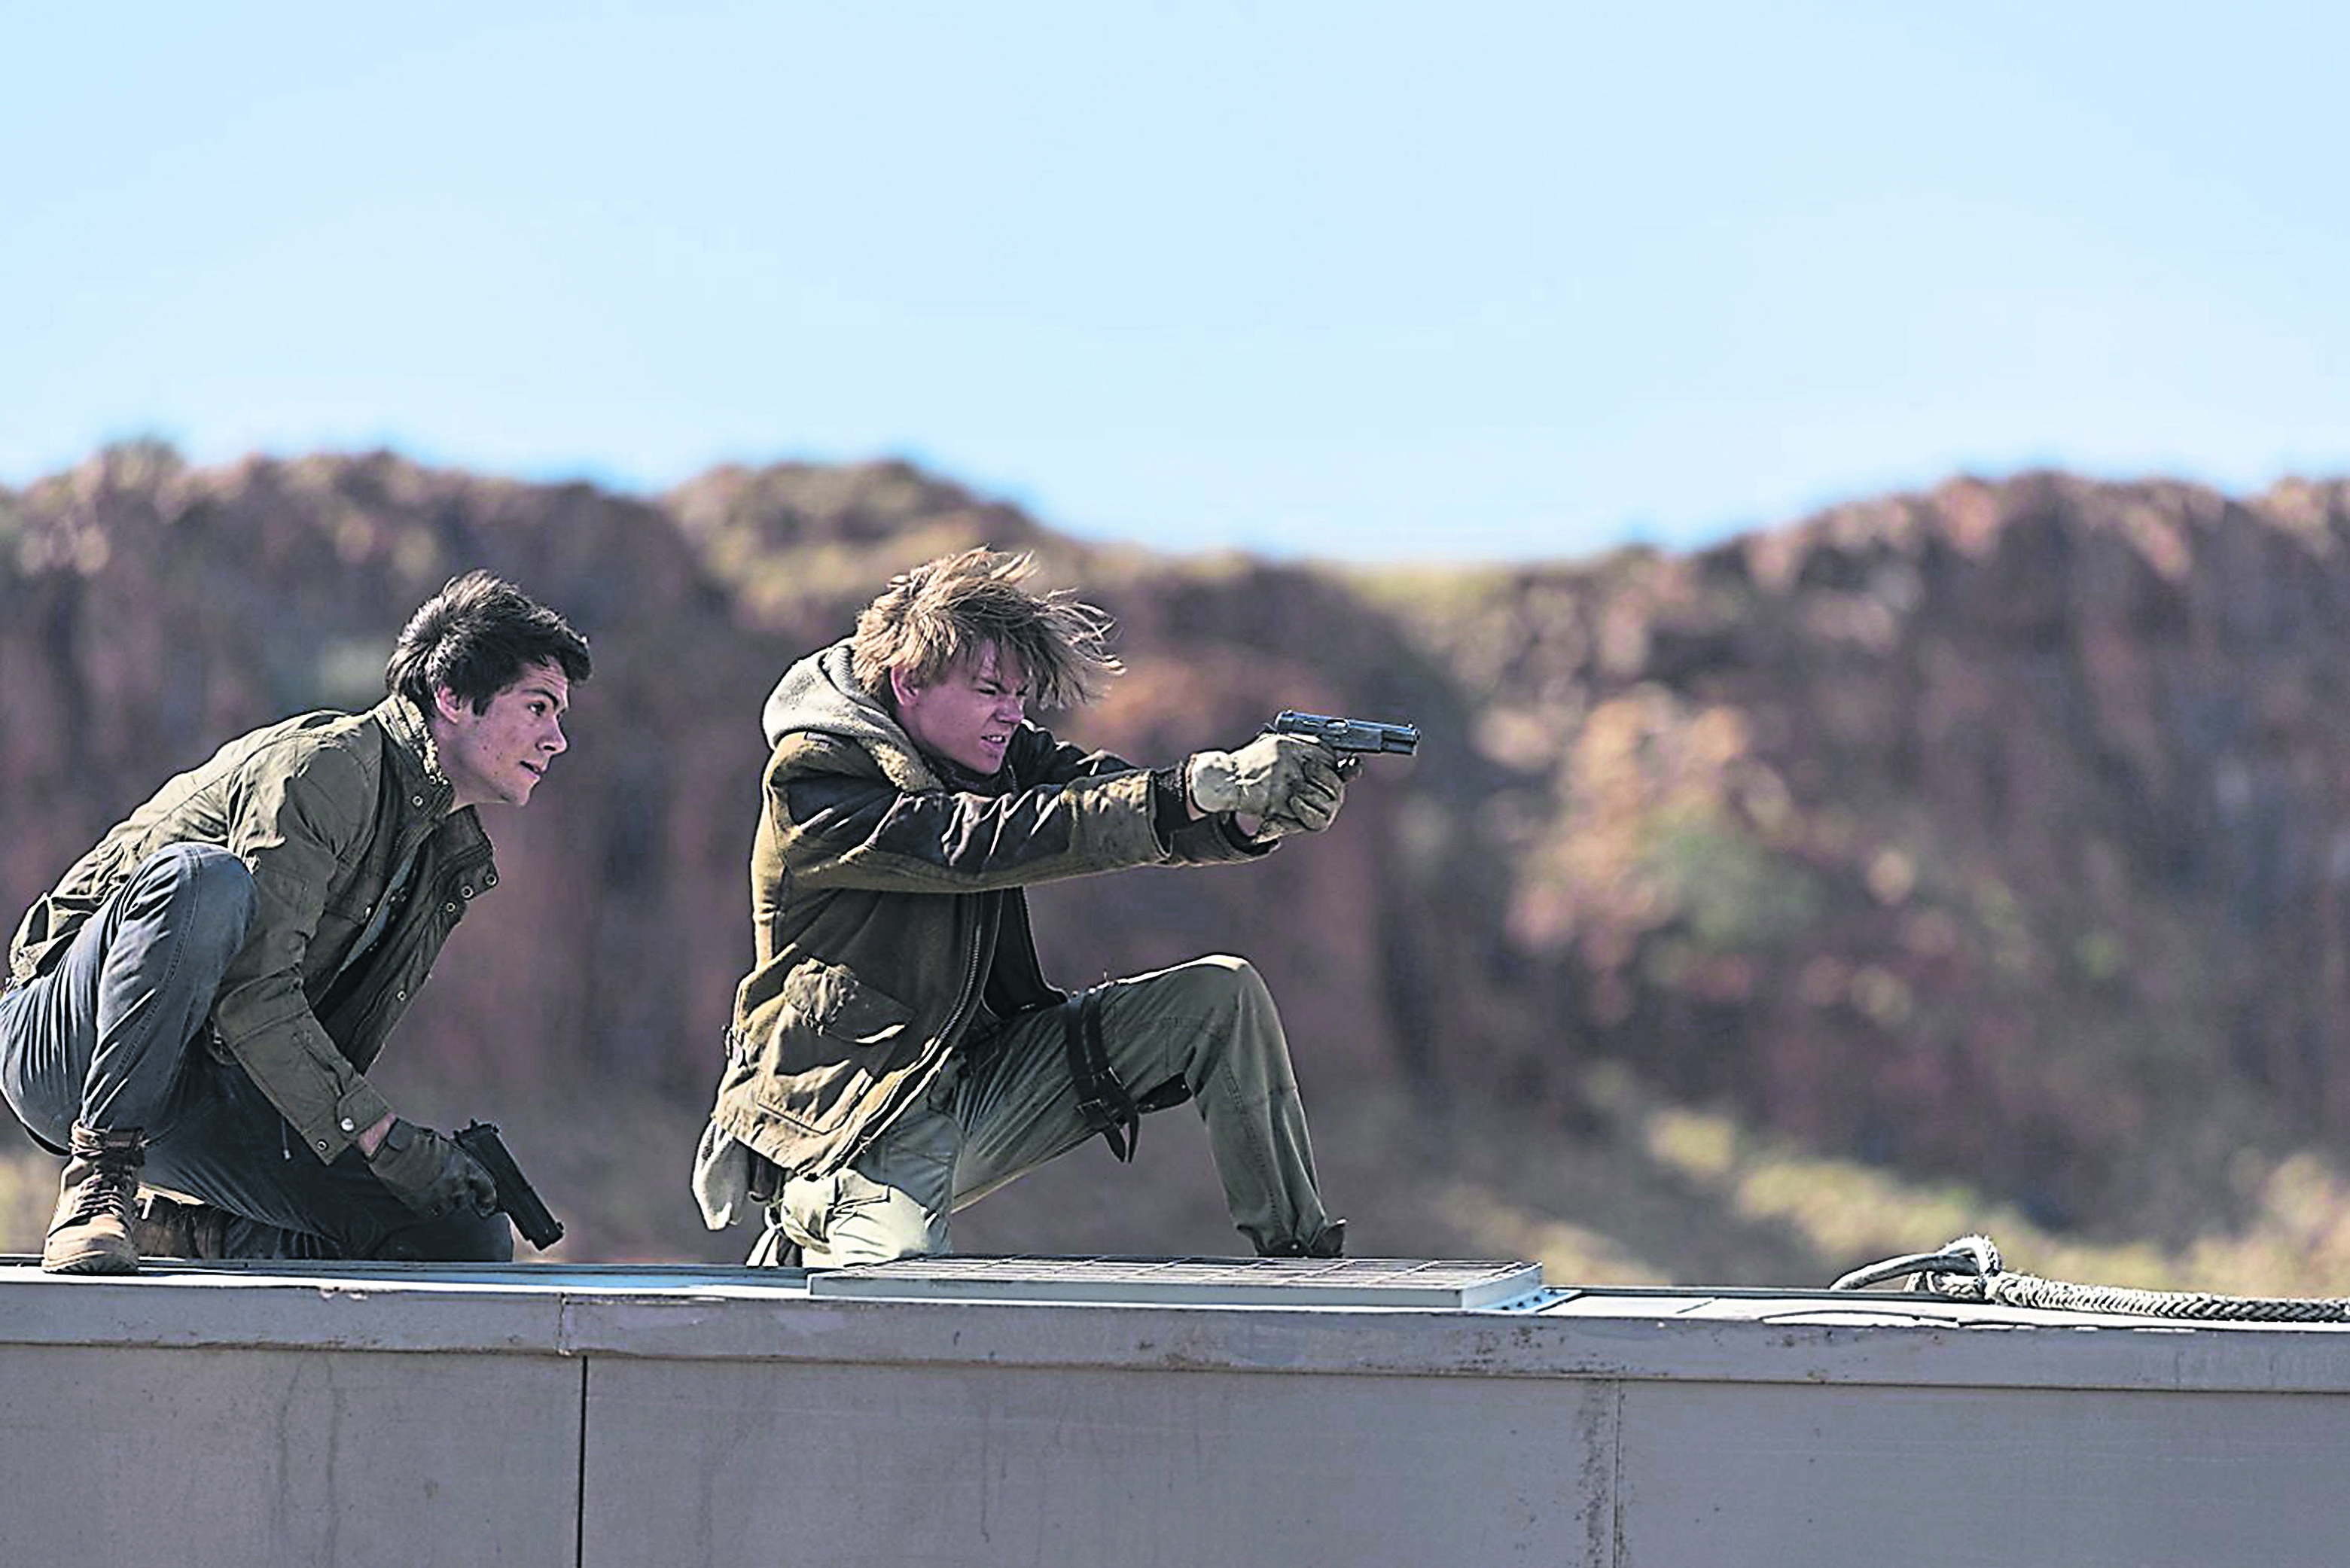 Time to pull the trigger on Maze Runner franchise